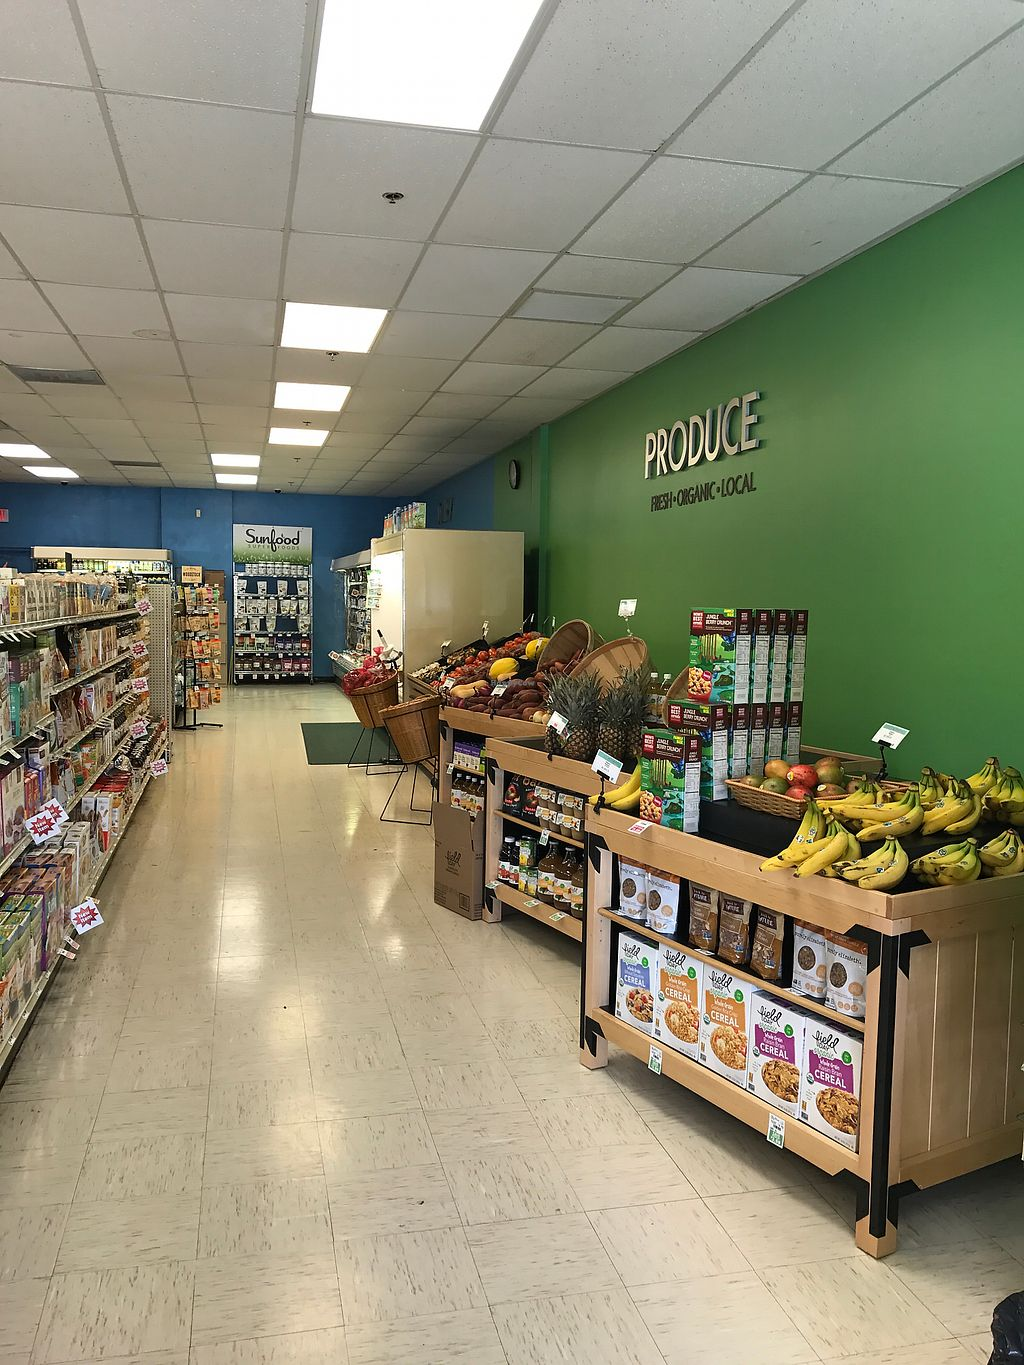 "Photo of Cape Cod Natural Foods  by <a href=""/members/profile/Sarah%20P"">Sarah P</a> <br/>Produce <br/> September 10, 2017  - <a href='/contact/abuse/image/2082/302987'>Report</a>"